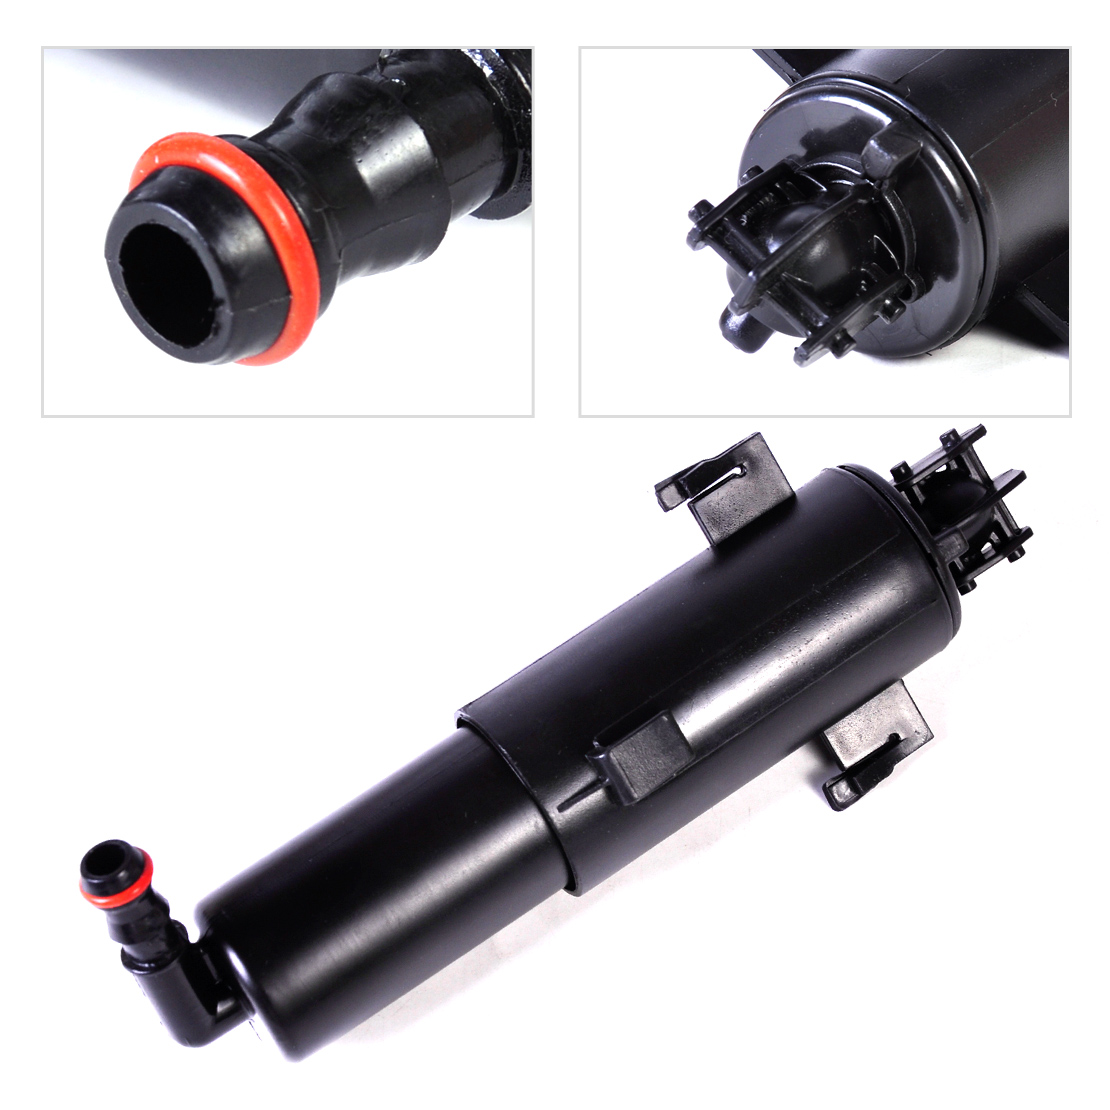 DWCX Car Headlight Headlamp Cleaning Washer Nozzle Pump Cylinder 61677179311 61674449335 For BMW E90 3 Series 323i 325Ci 328i